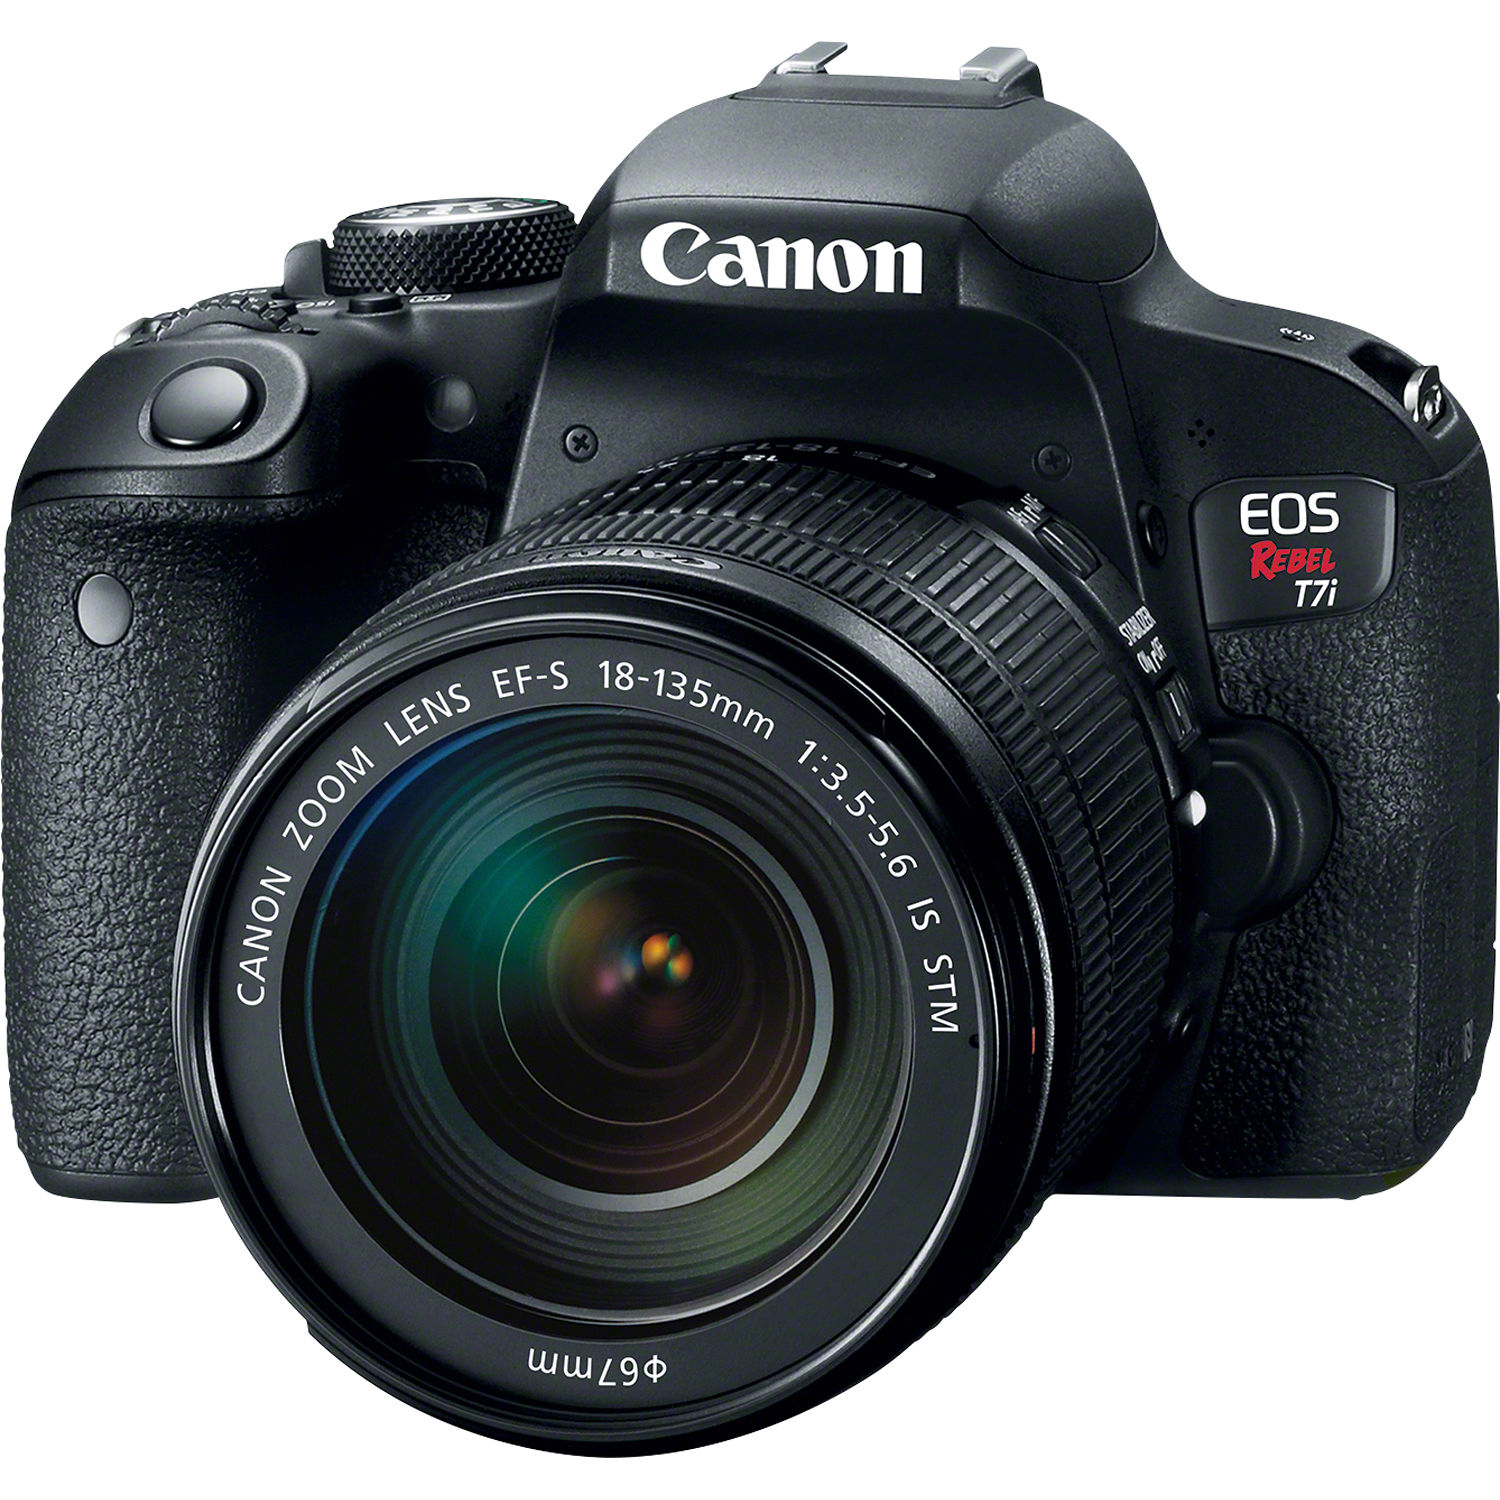 Canon EOS Rebel T7i DSLR Camera with 18-135mm Lens by Canon